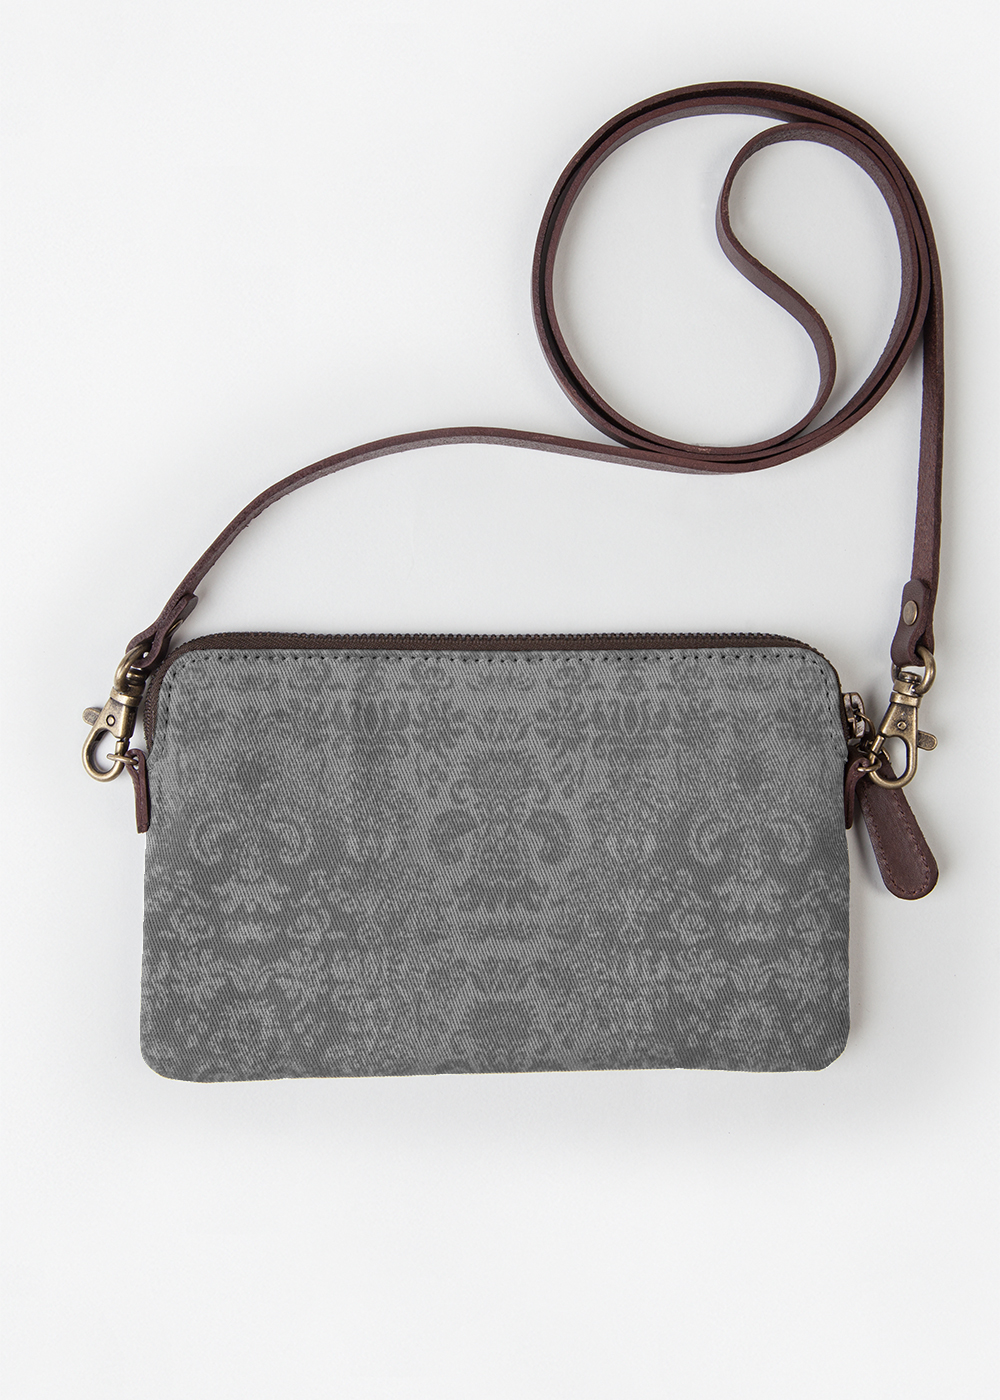 VIDA Statement Clutch - Halipleumon Sanguinans by VIDA